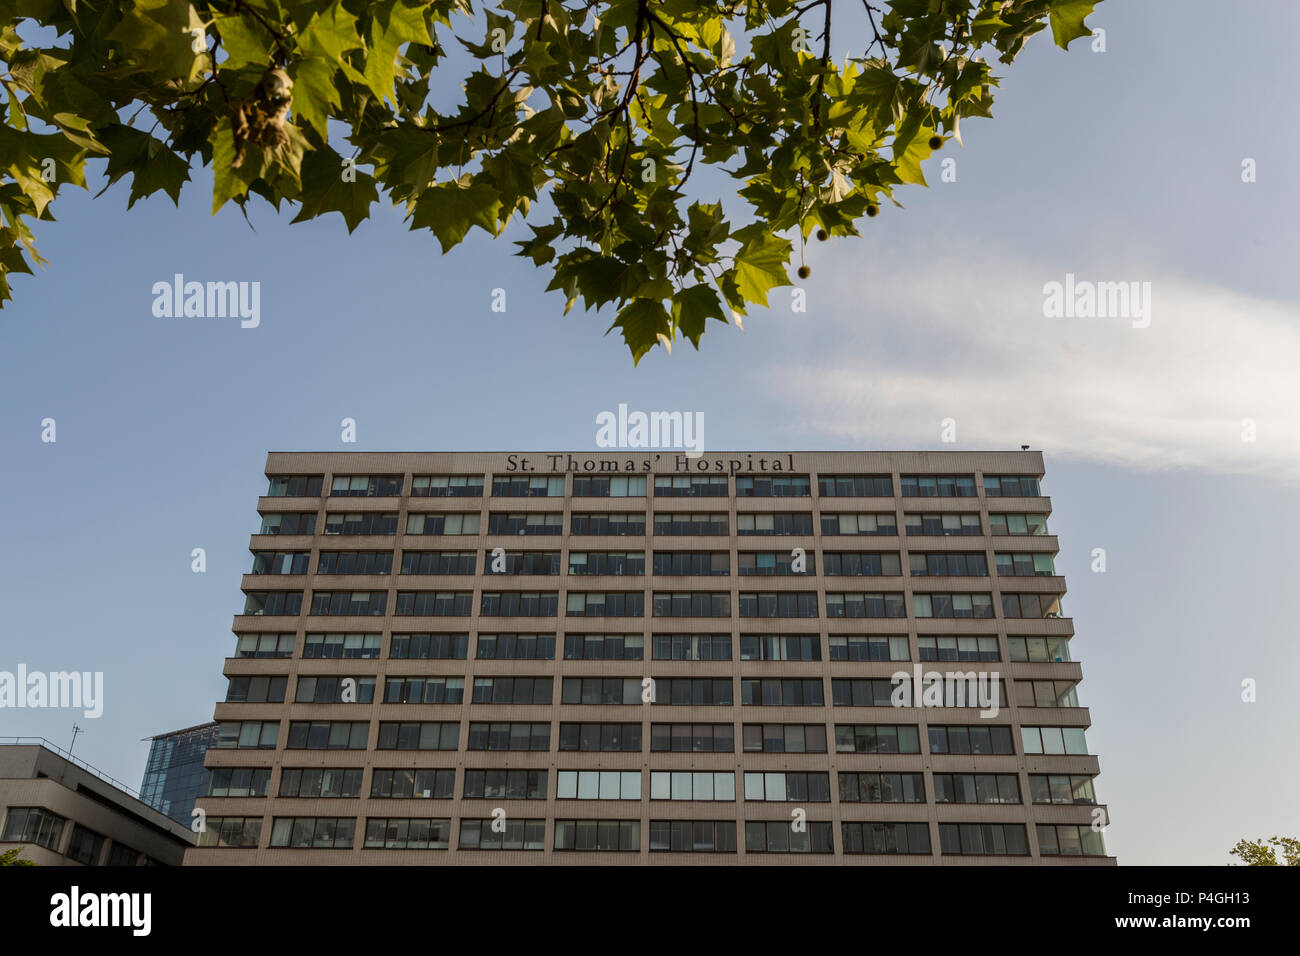 St Thomas Hospital,London - Stock Image